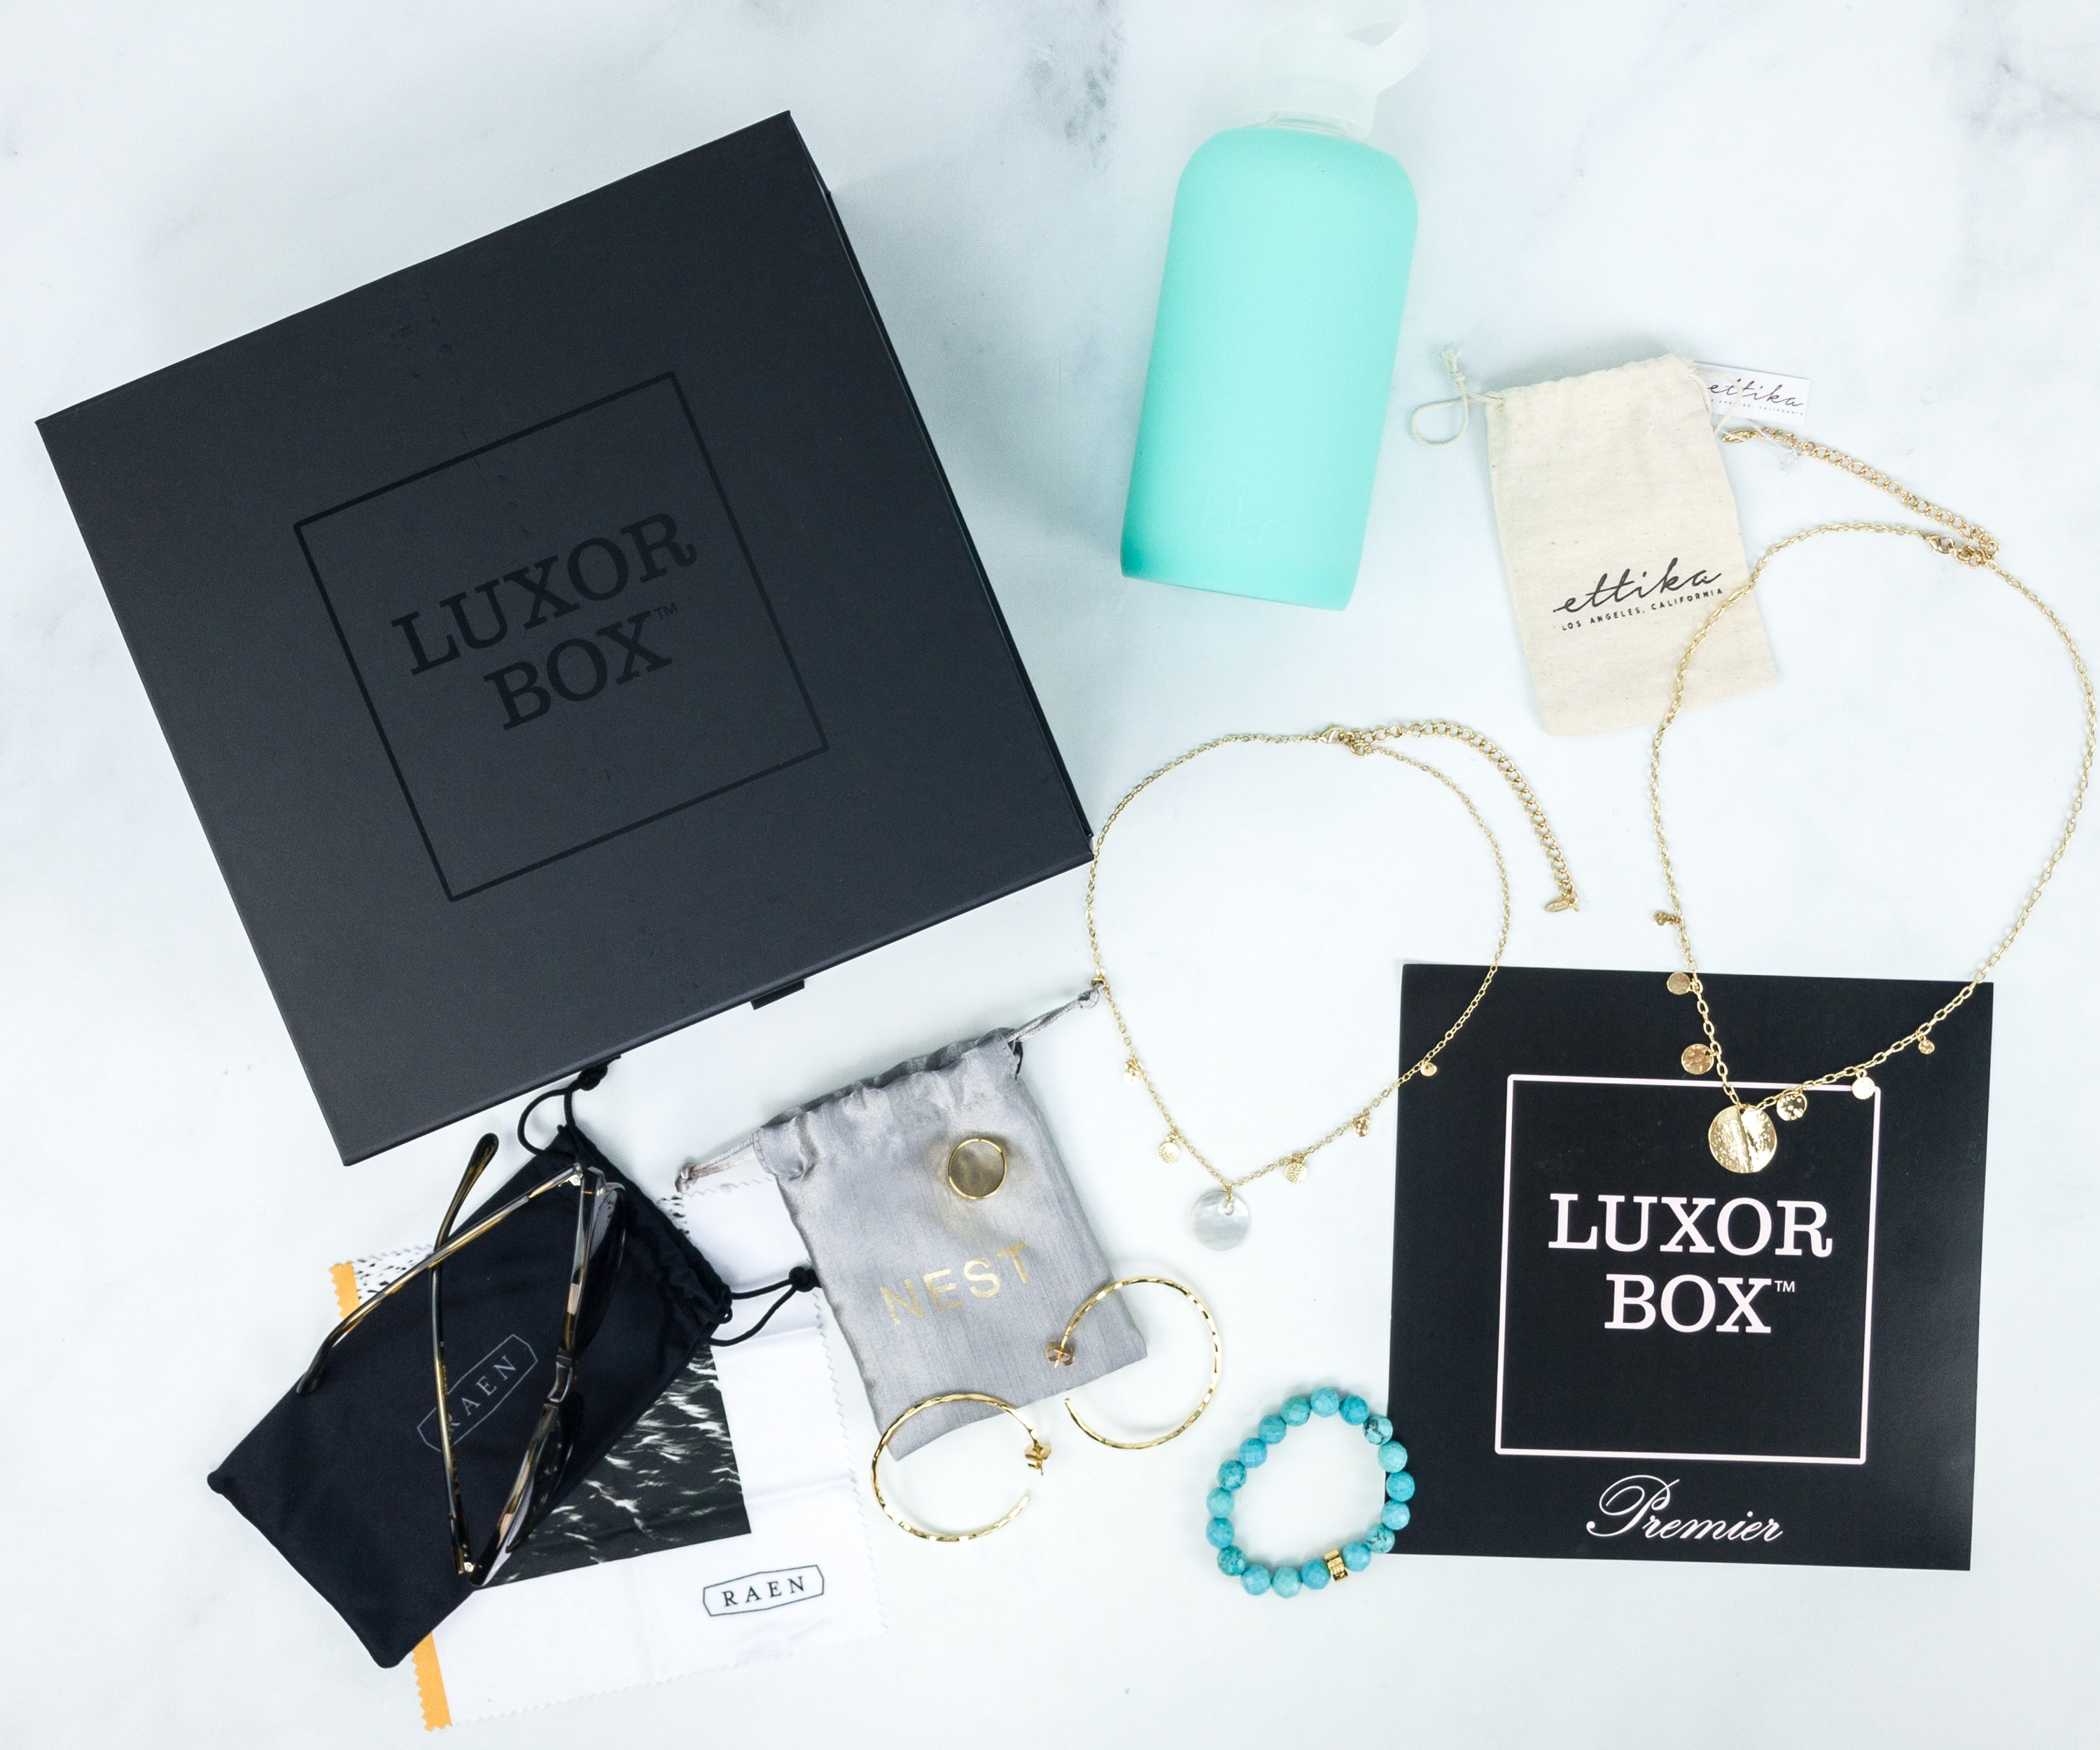 Luxor Box July 2019 Subscription Box Review